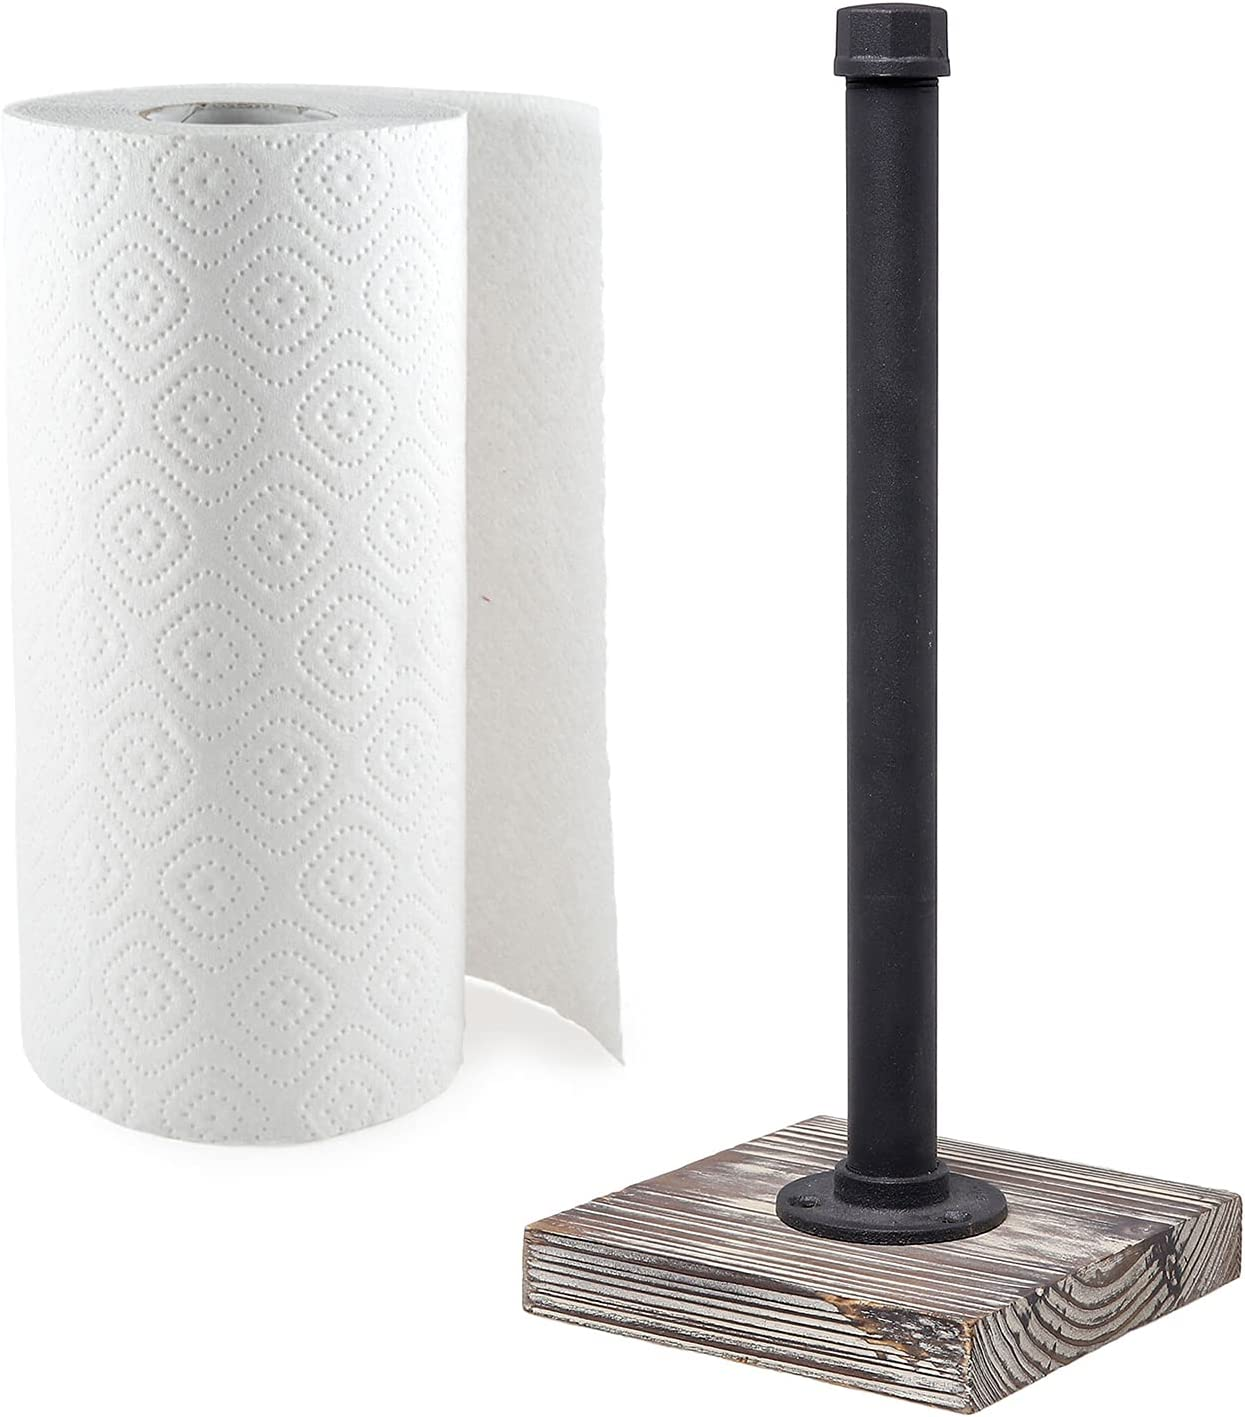 MyGift Industrial Pipe Design Paper Towel Roll Dispenser with Torched Wood Base